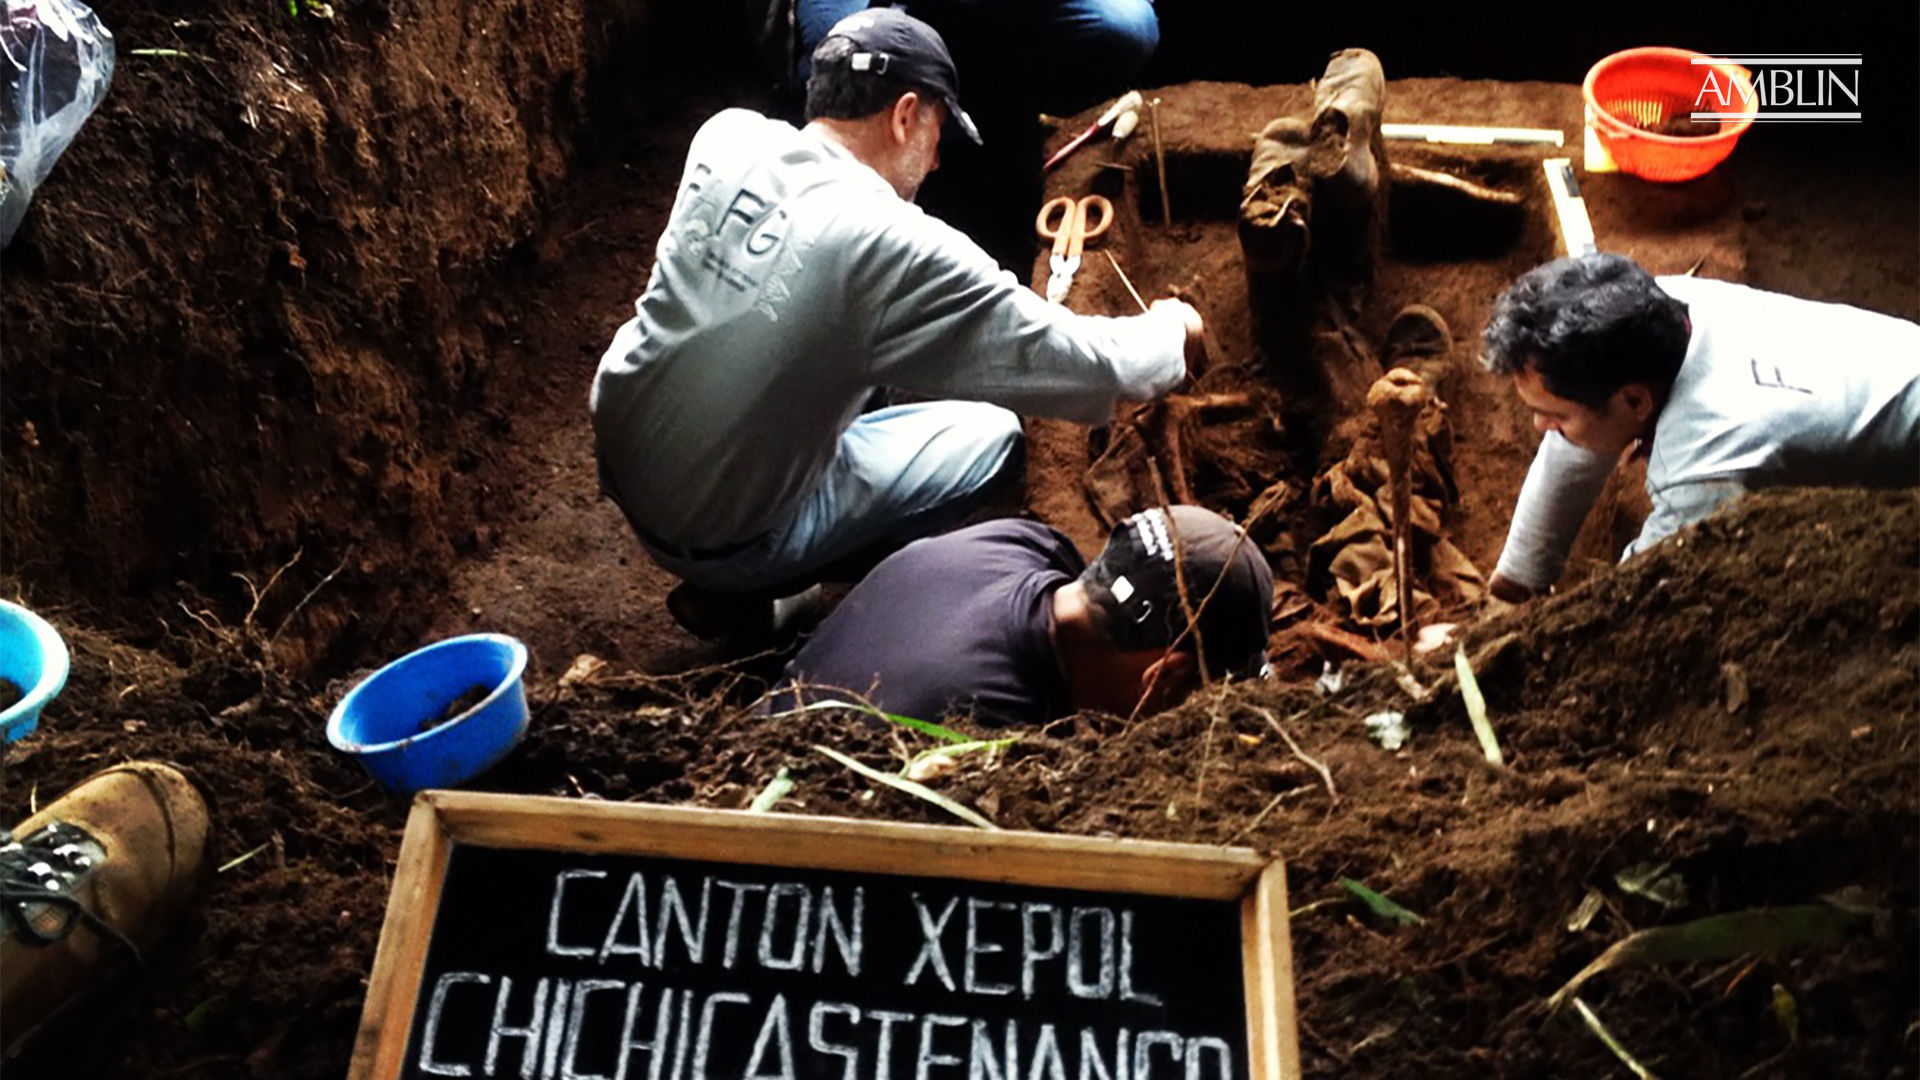 FAFG anthropologists during exhumation in Xepol. [Photo: Marte Tunheim]